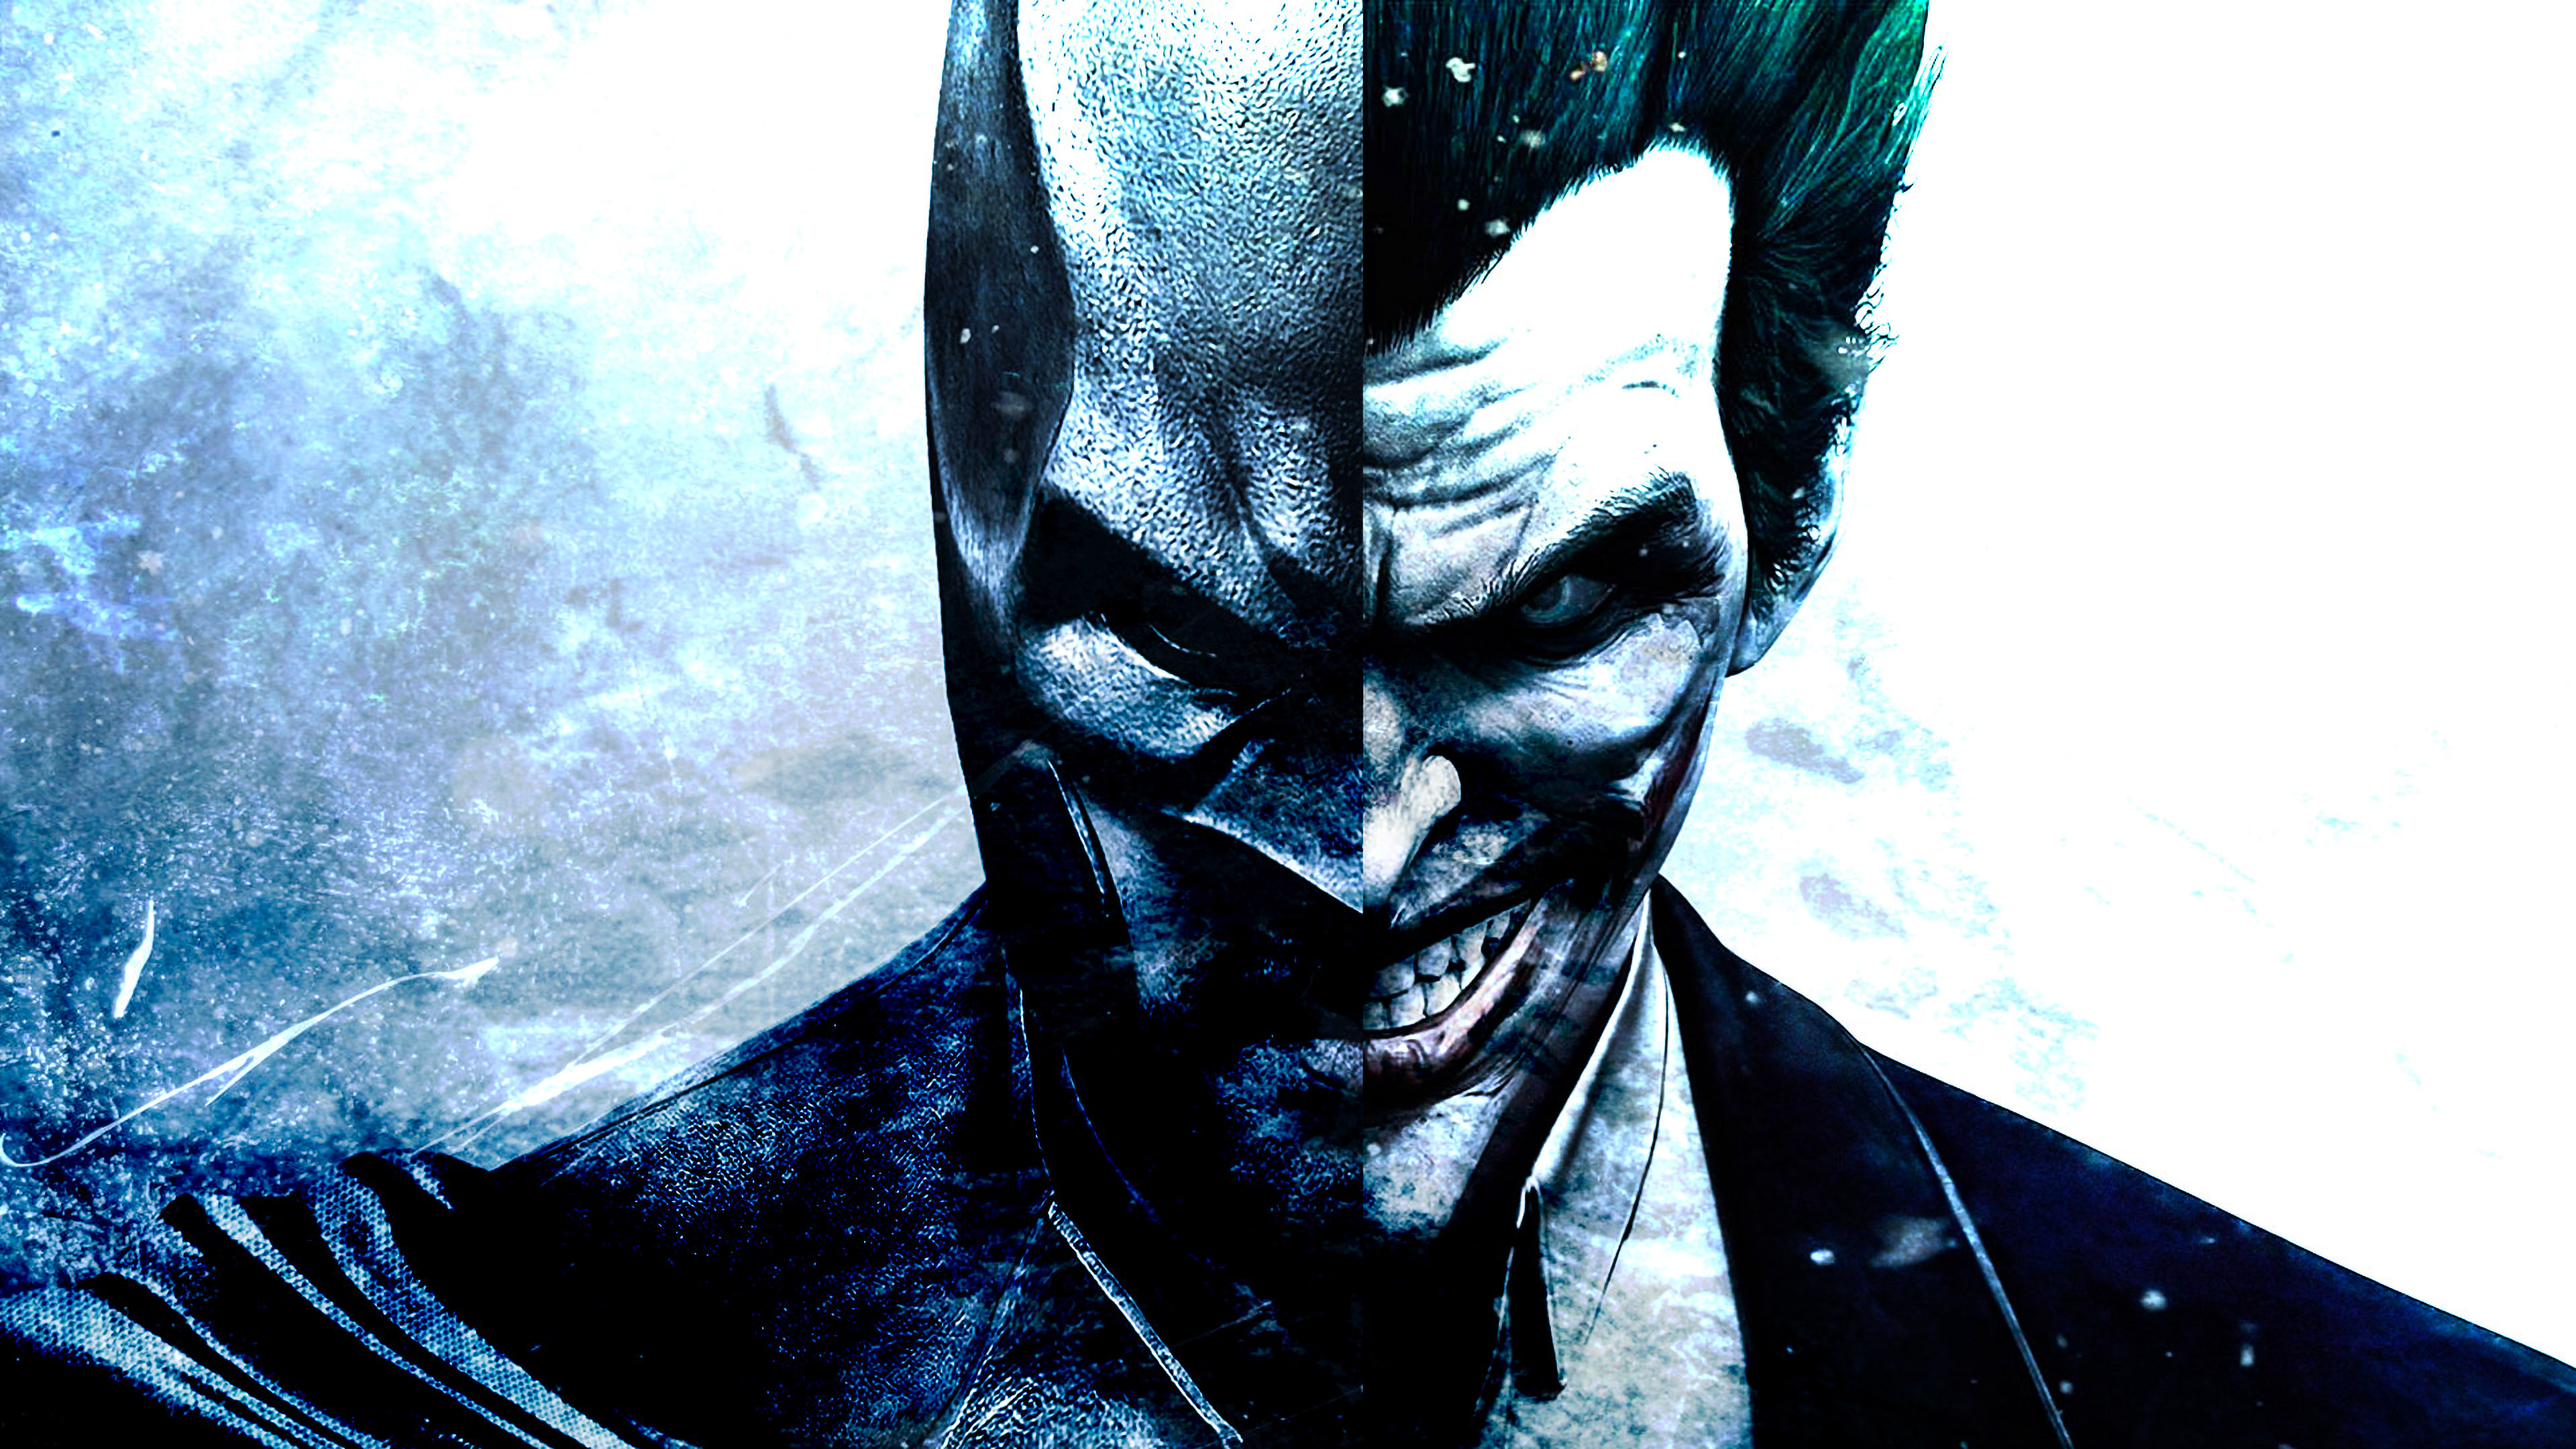 Batman Joker Face 4K Wallpaper - Best Wallpapers